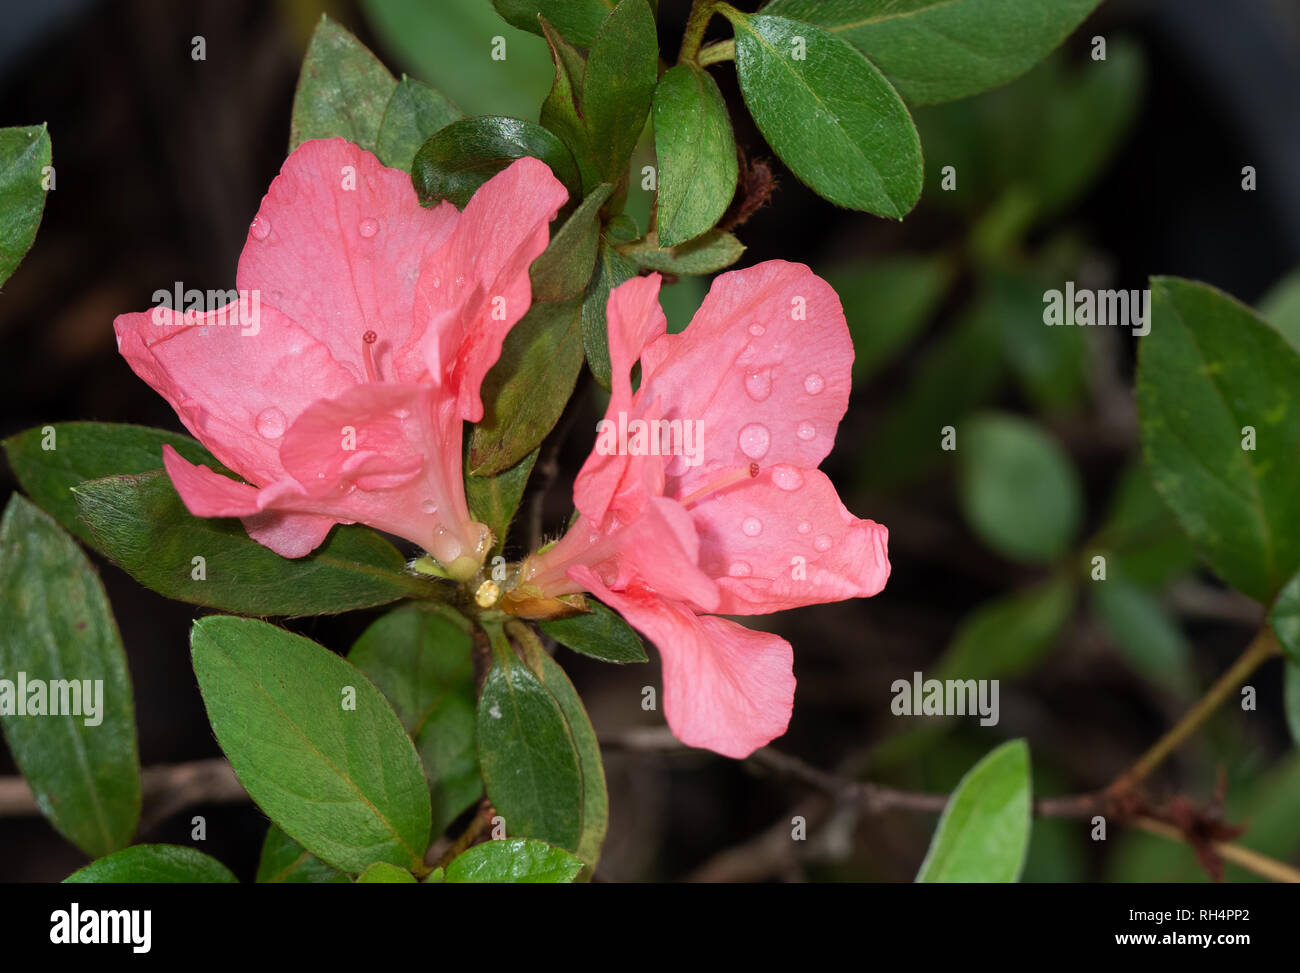 Closeup Pink Rhododendron arboreum Flowers with Green Leaves - Stock Image